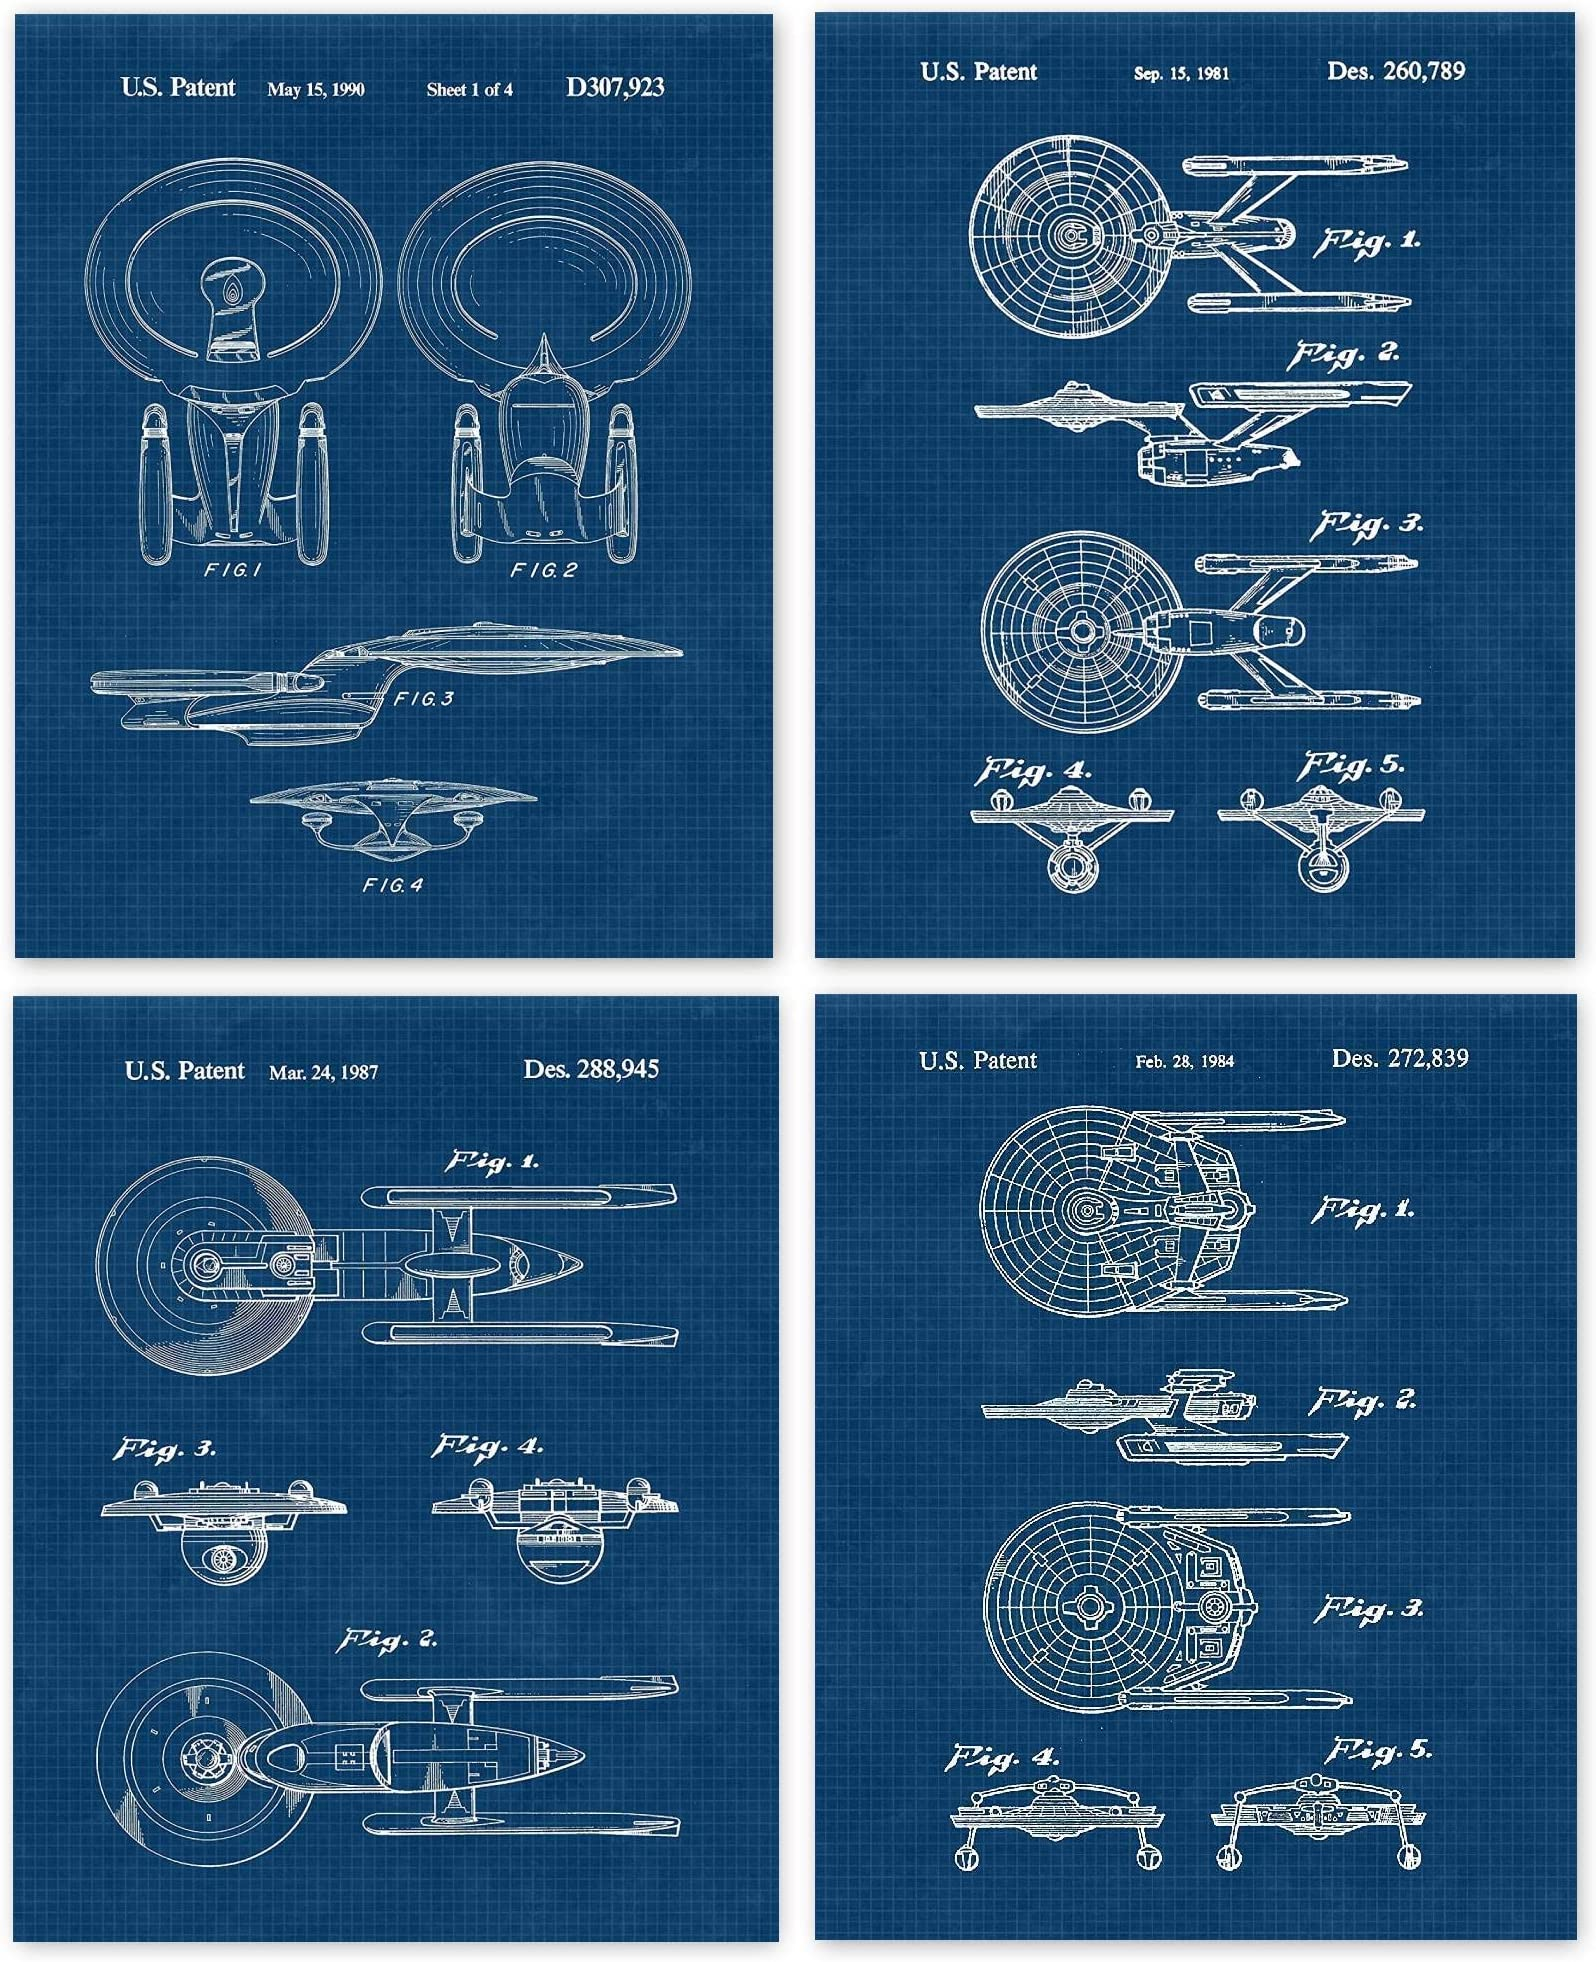 Vintage Star Trek Patent Poster Prints Garage Office Set of 4 Comic-Con /& Movies Fan 8x10 Shop College Student Unframed Photos Wall Art Decor Gifts Under 20 for Home Teacher Man Cave